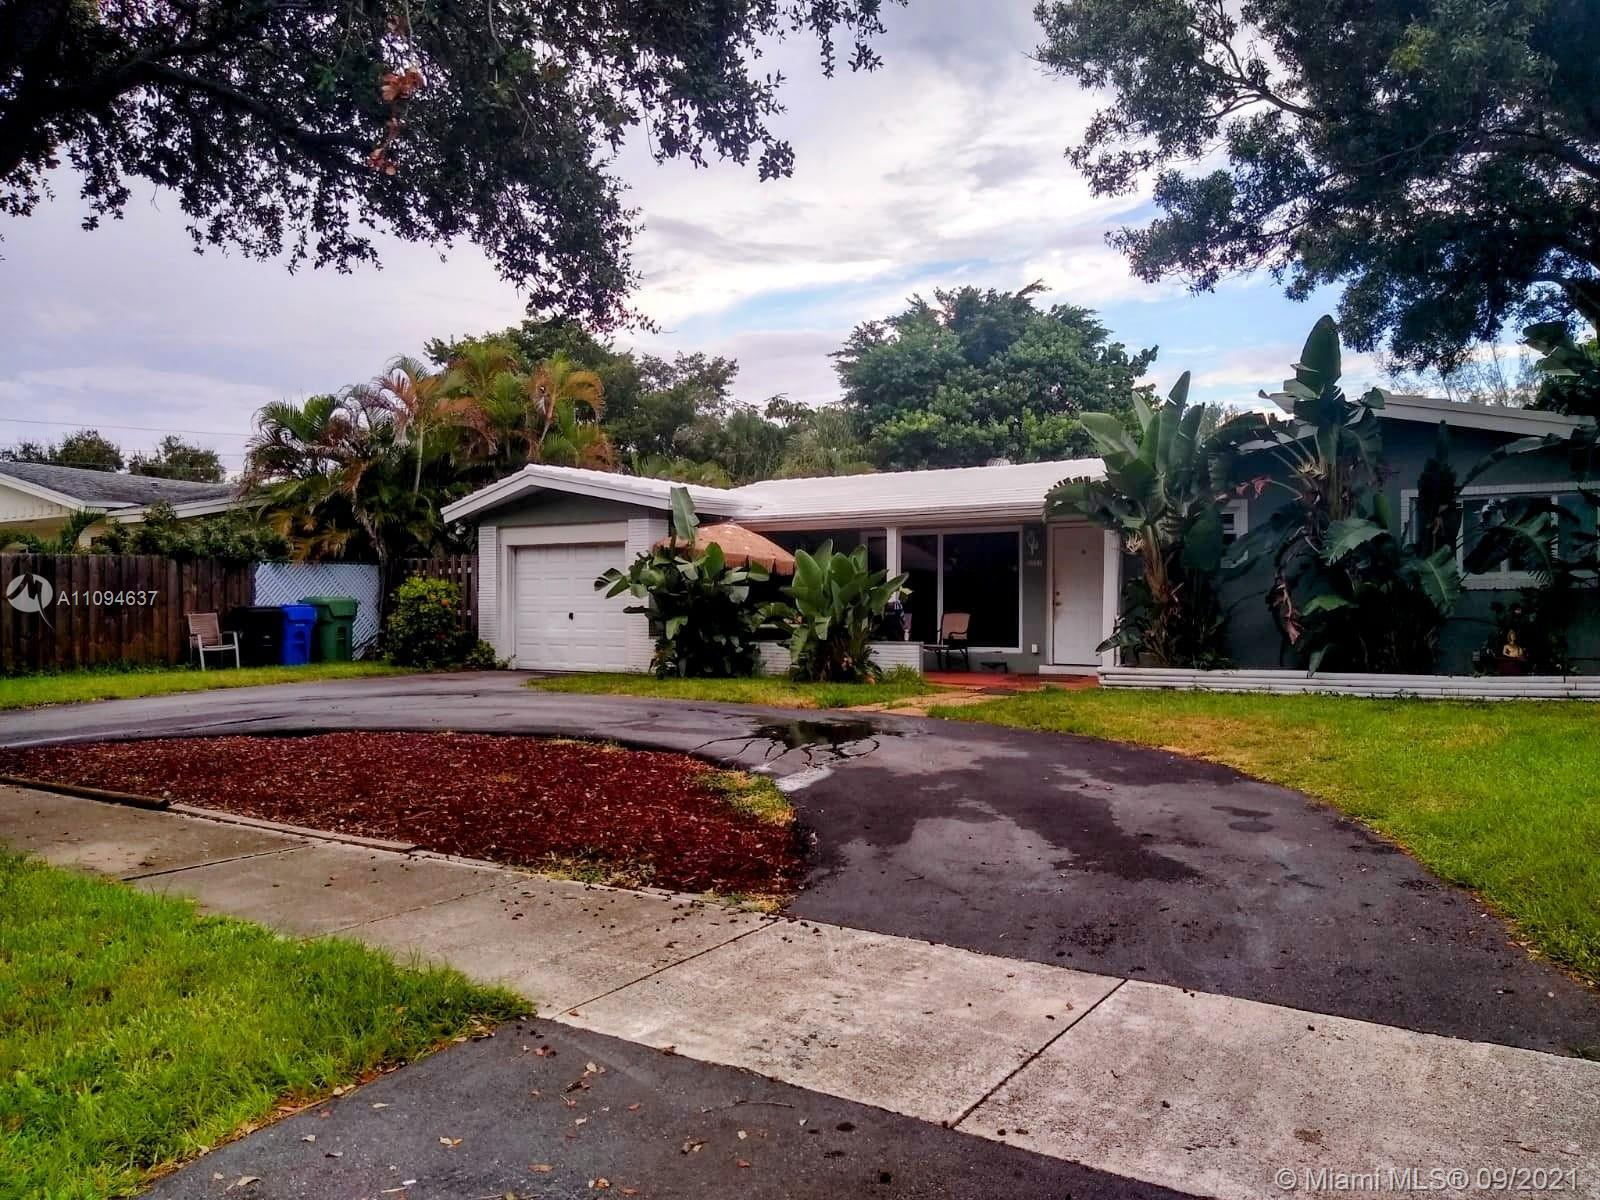 Lowest Priced Home in Area. Huge Lot Size. Inground Pool and screened in, also includes gazebo and s